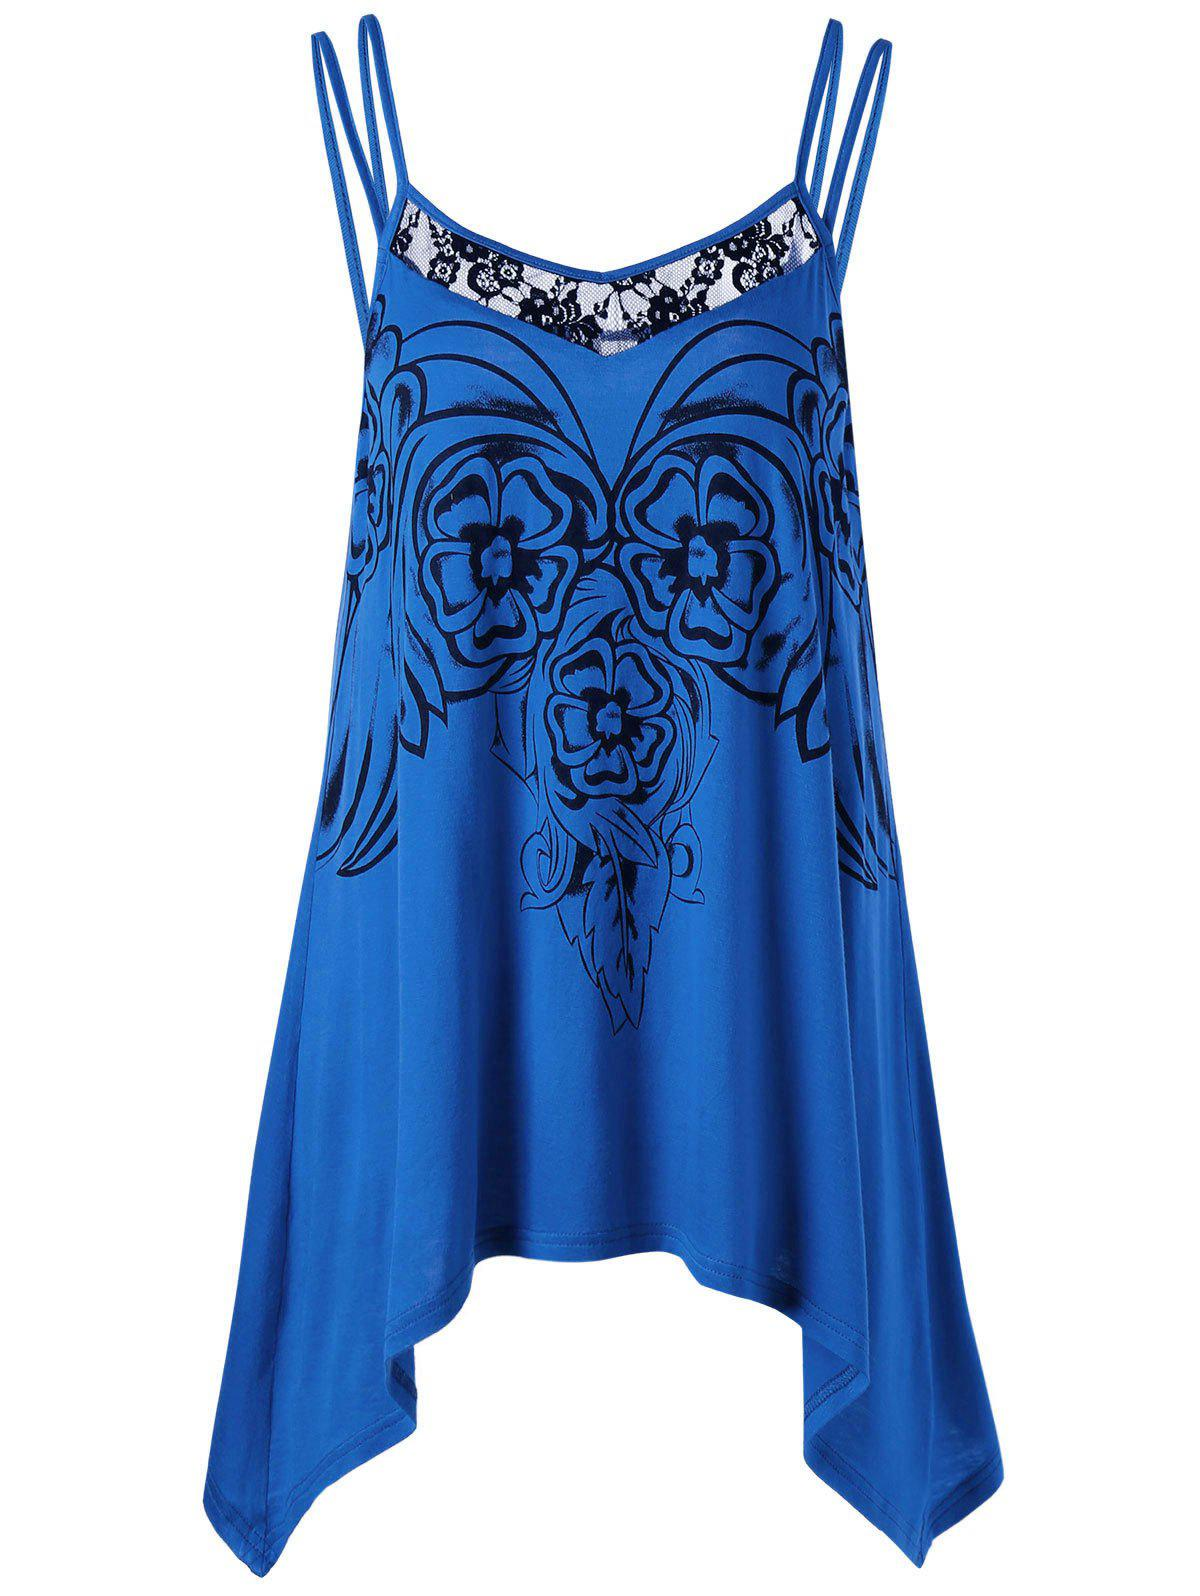 Asymmetric Plus Size Cami Tunic TopWOMEN<br><br>Size: XL; Color: ROYAL; Material: Rayon; Shirt Length: Long; Sleeve Length: Sleeveless; Collar: Spaghetti Strap; Style: Casual; Season: Summer; Embellishment: Lace; Pattern Type: Floral; Weight: 0.2040kg; Package Contents: 1 x Top;